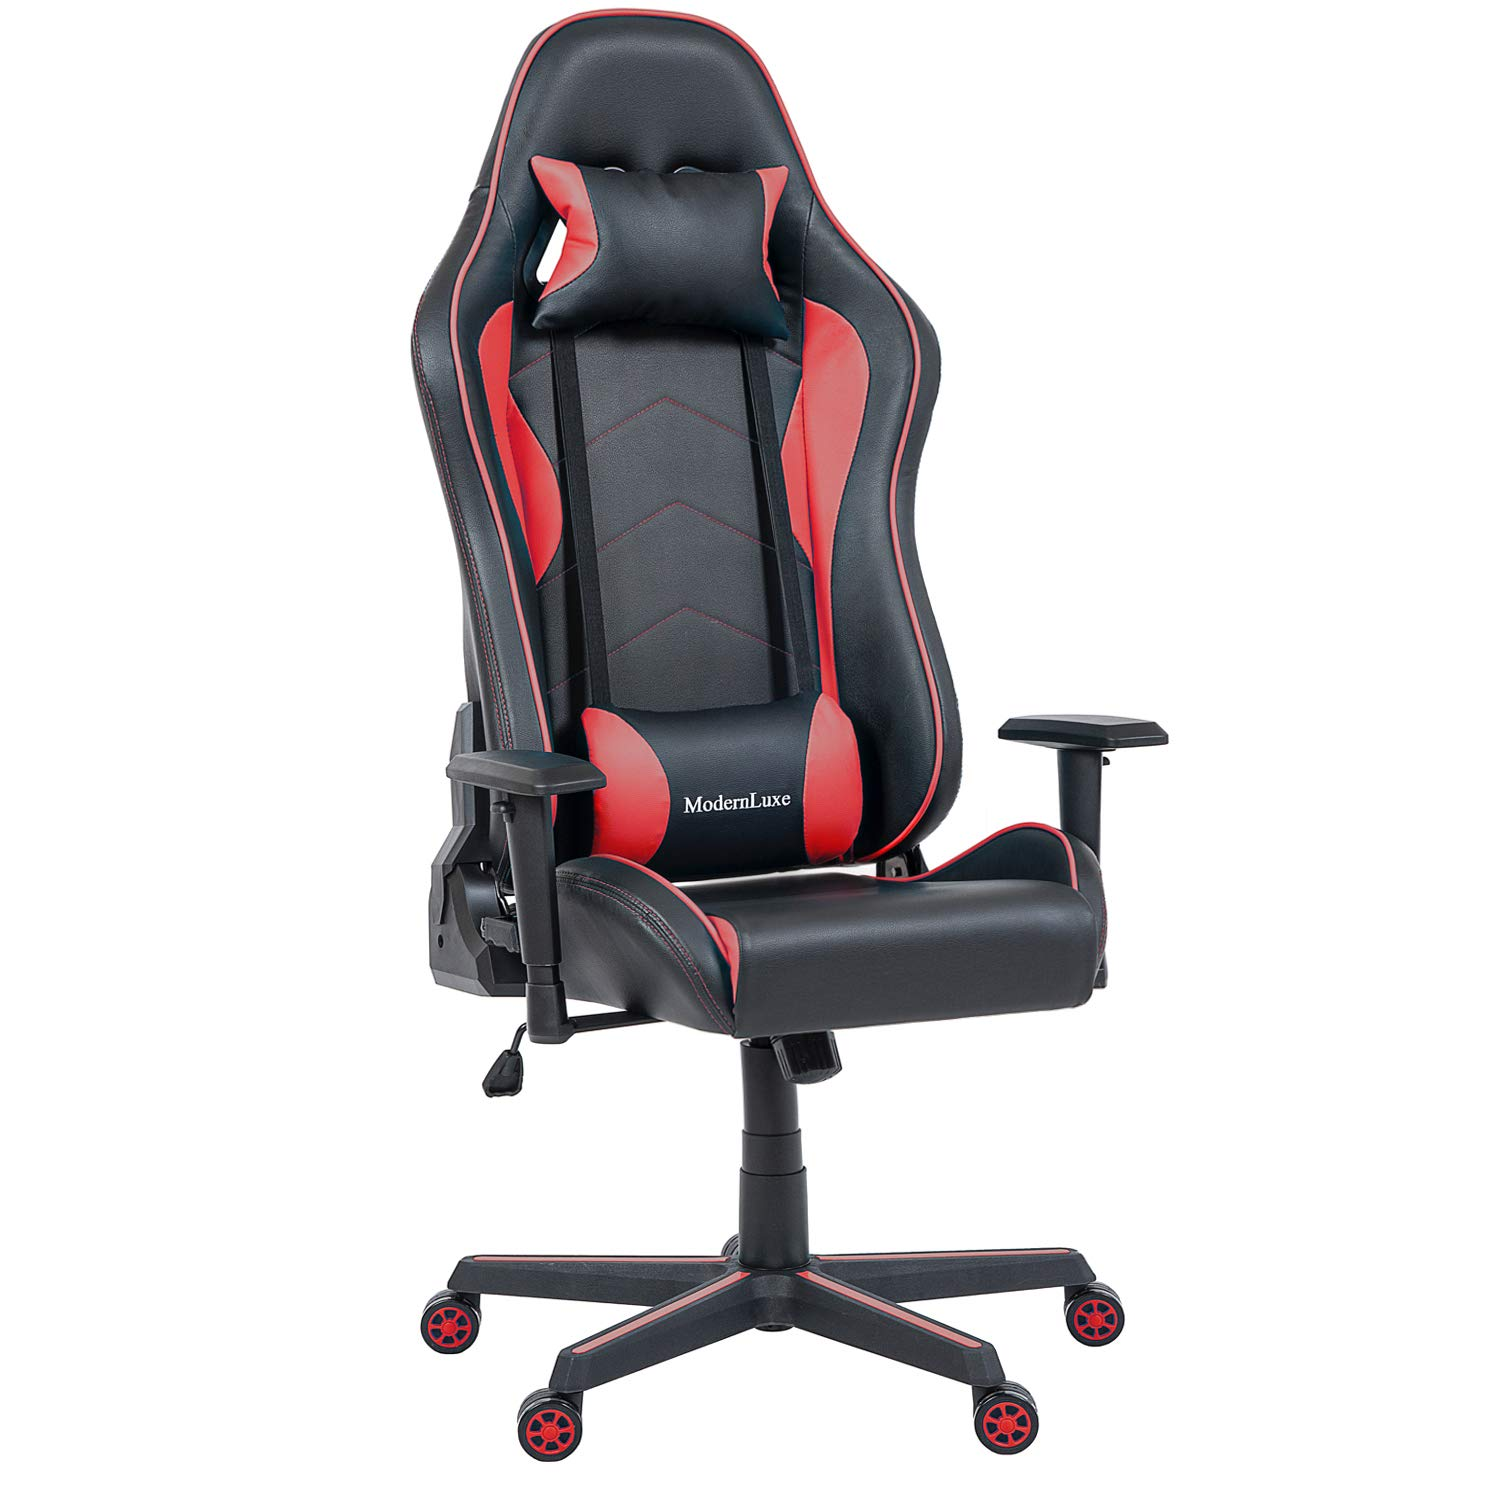 Merax Ergonomic Executive Office Chair High Back Swivel Racing Style Gaming Chair PU Leather with Lumbar Support and Headrest (Light Red/Big Surface)